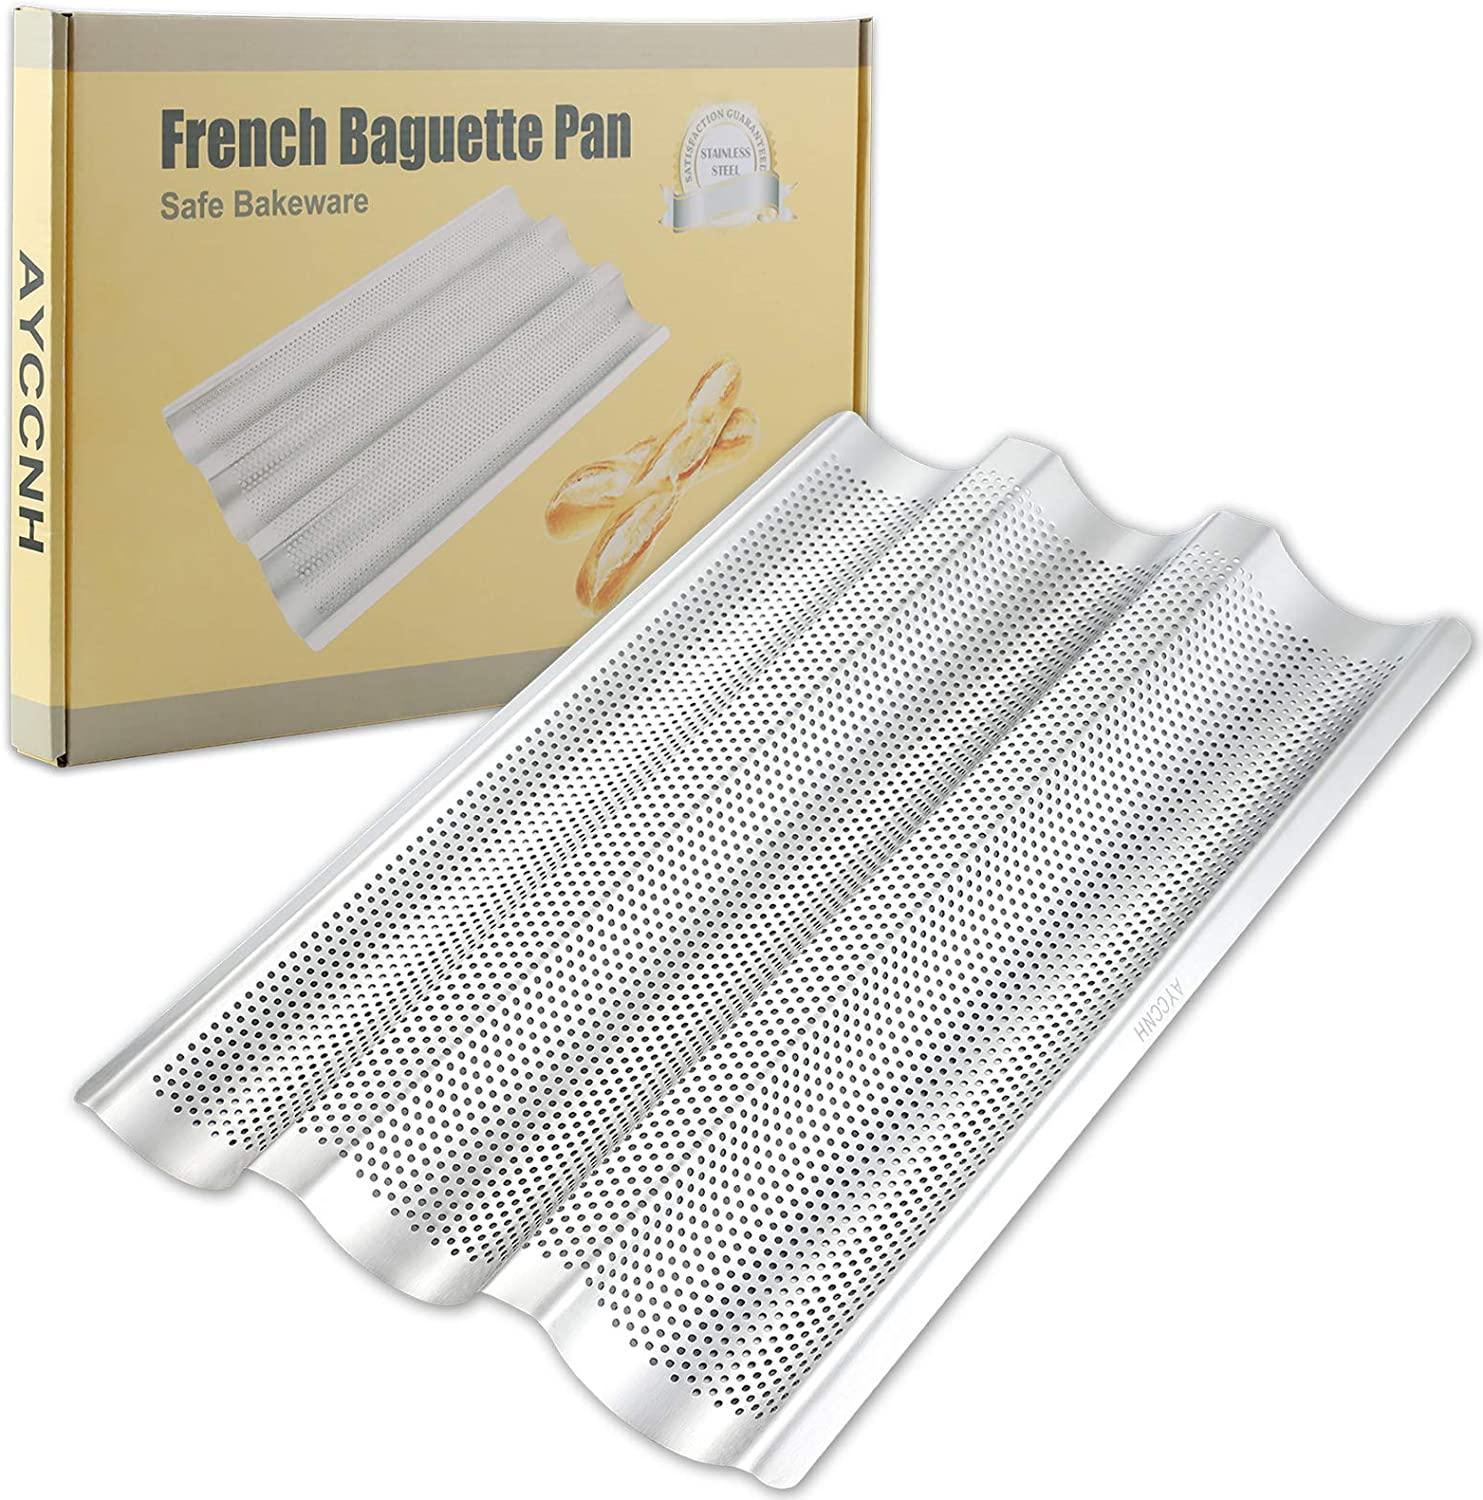 "Stainless Steel French Baguette Bread Pan, Non-Toxic Perforated Loaf Pans for Baking 15""x10"", 3 Waves Toaster Oven Baking Tray (1 Pack)"